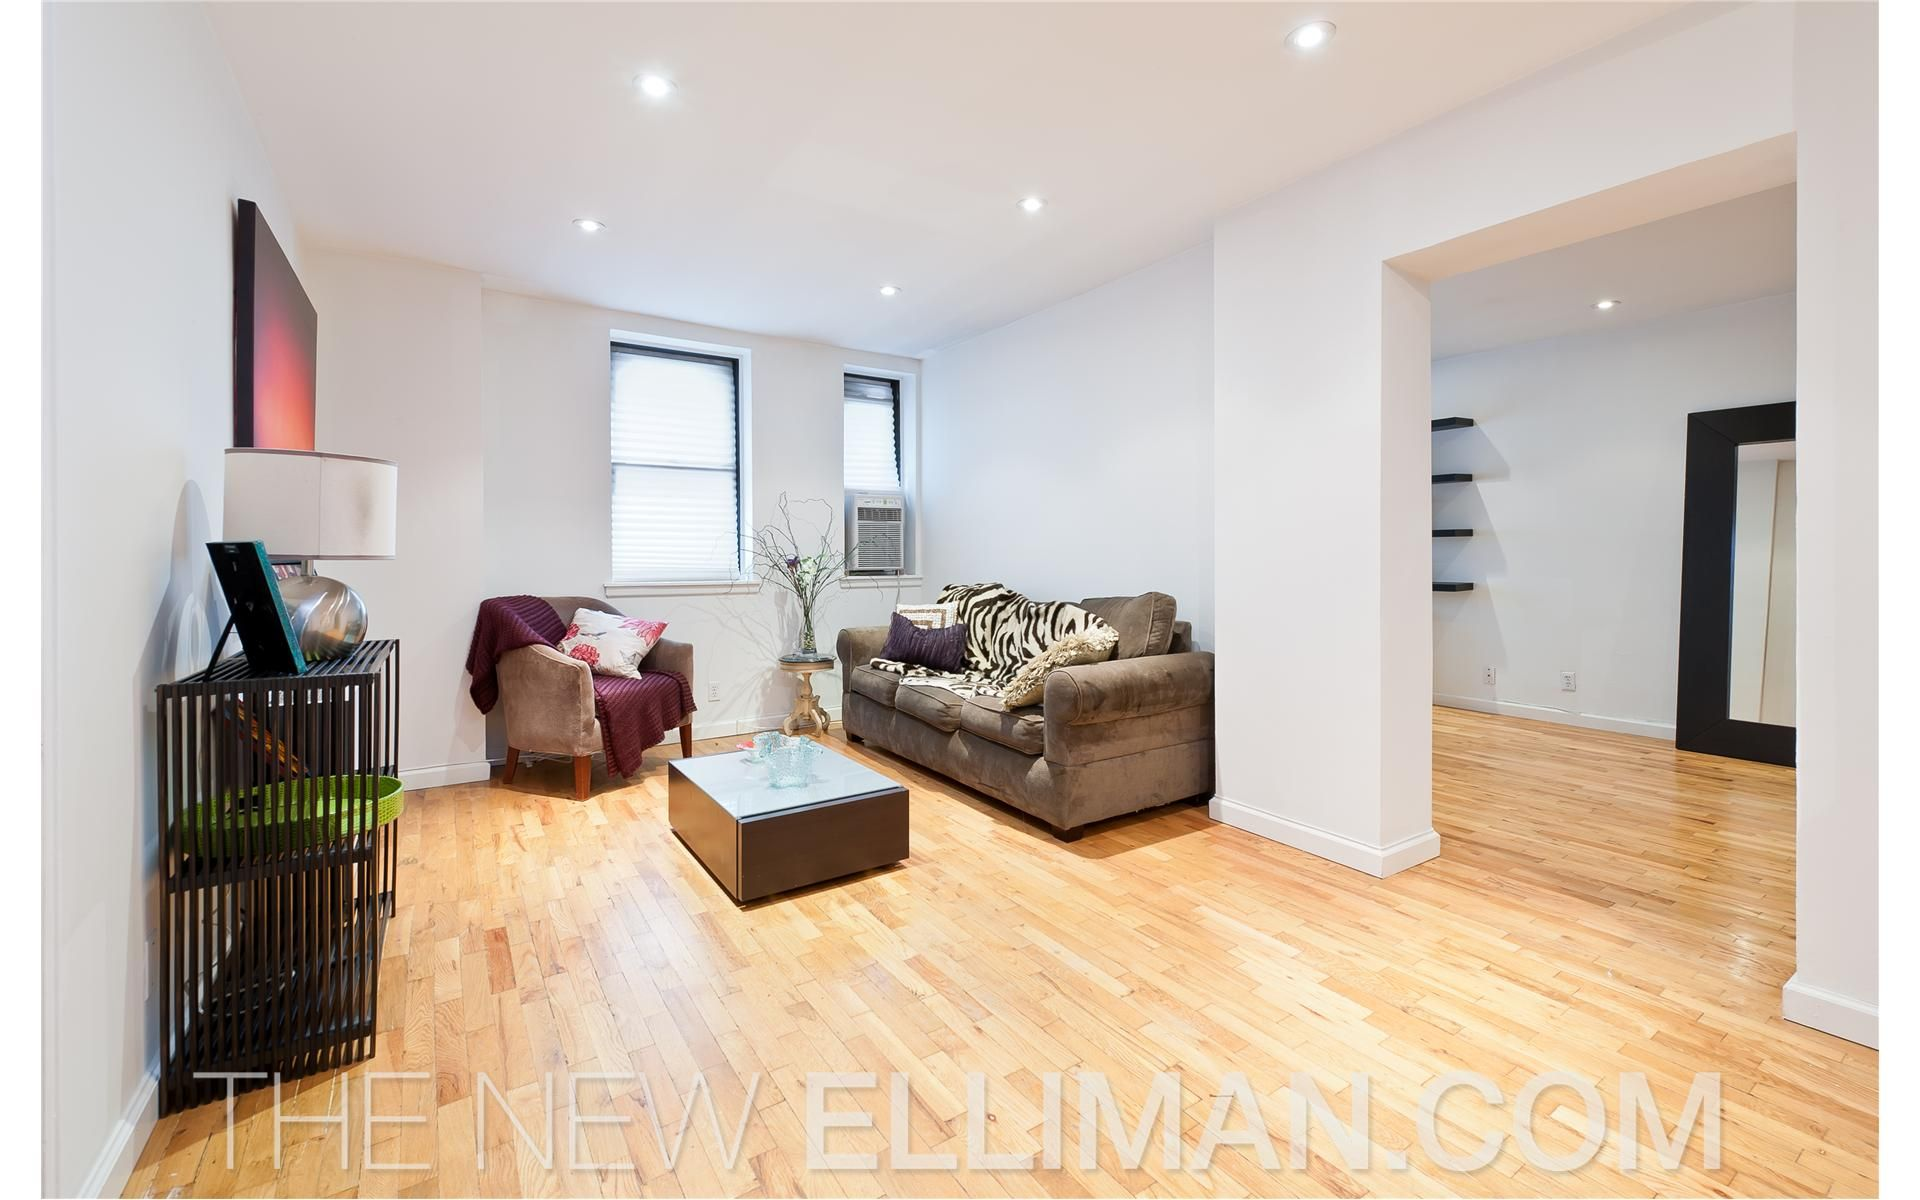 For Sale 42 West 13th St 1GH in Greenwich Village